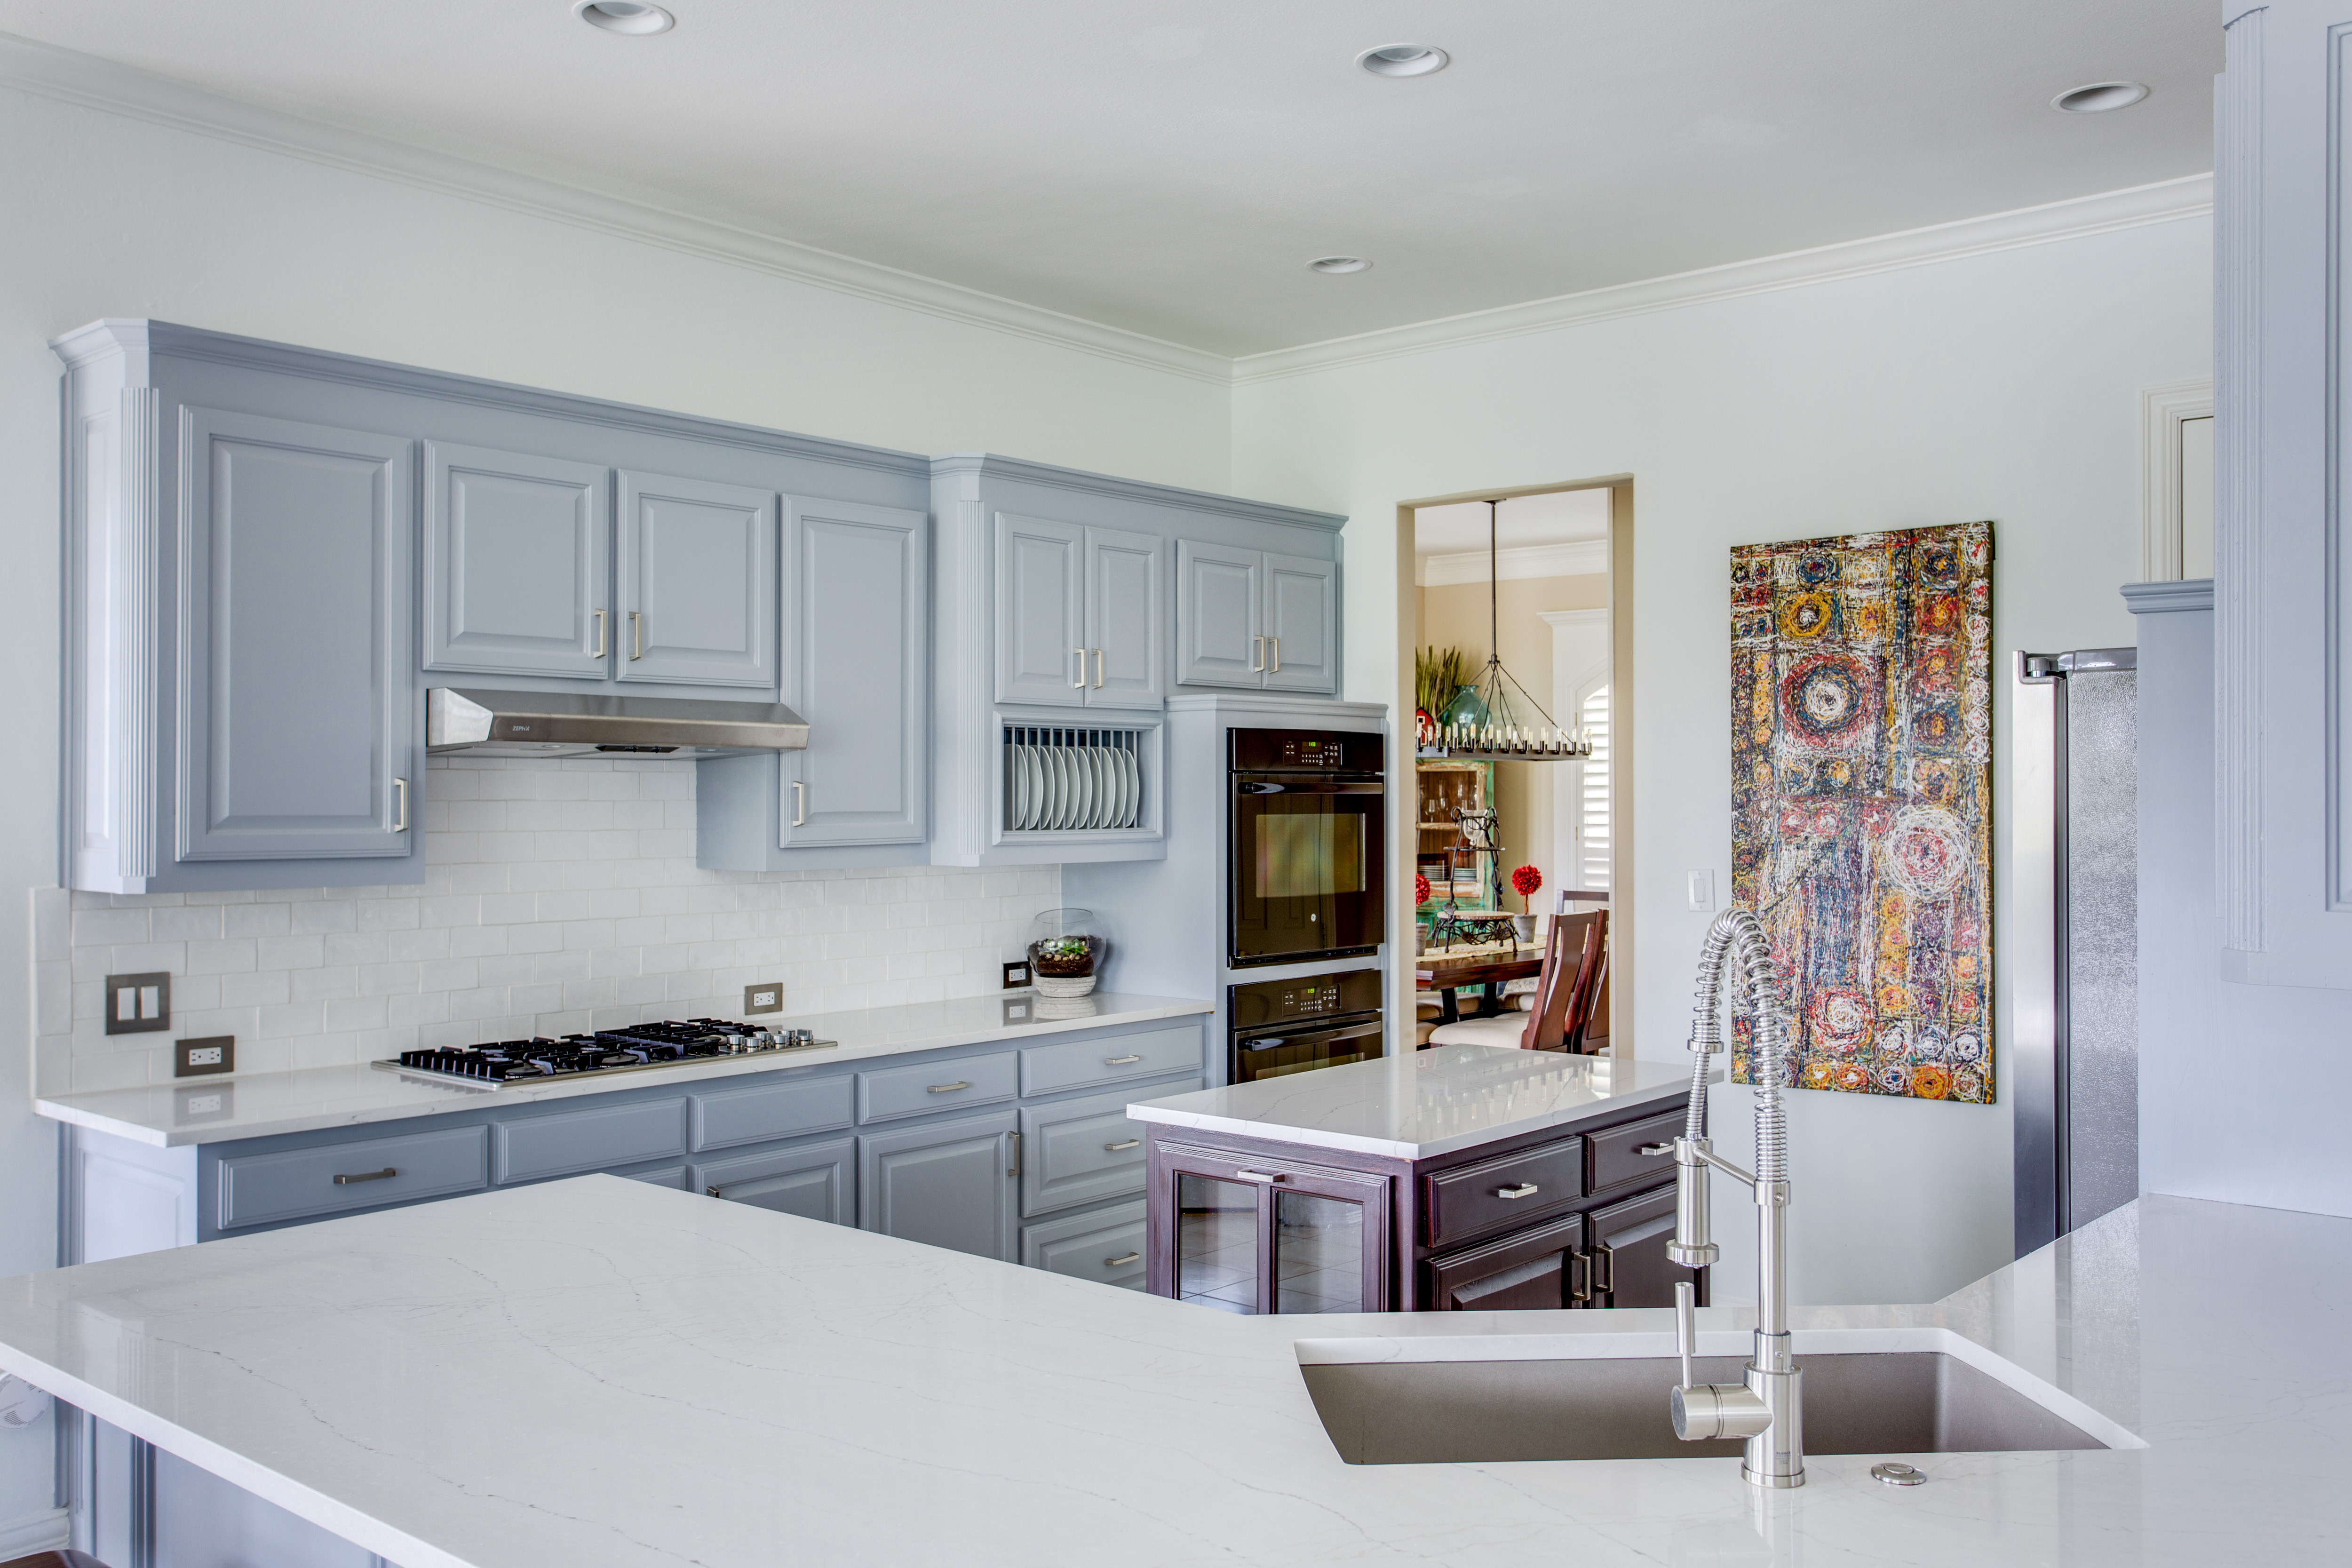 Custom Kitchen Design Gallery - Custom Kitchens | Snappy Kitchens